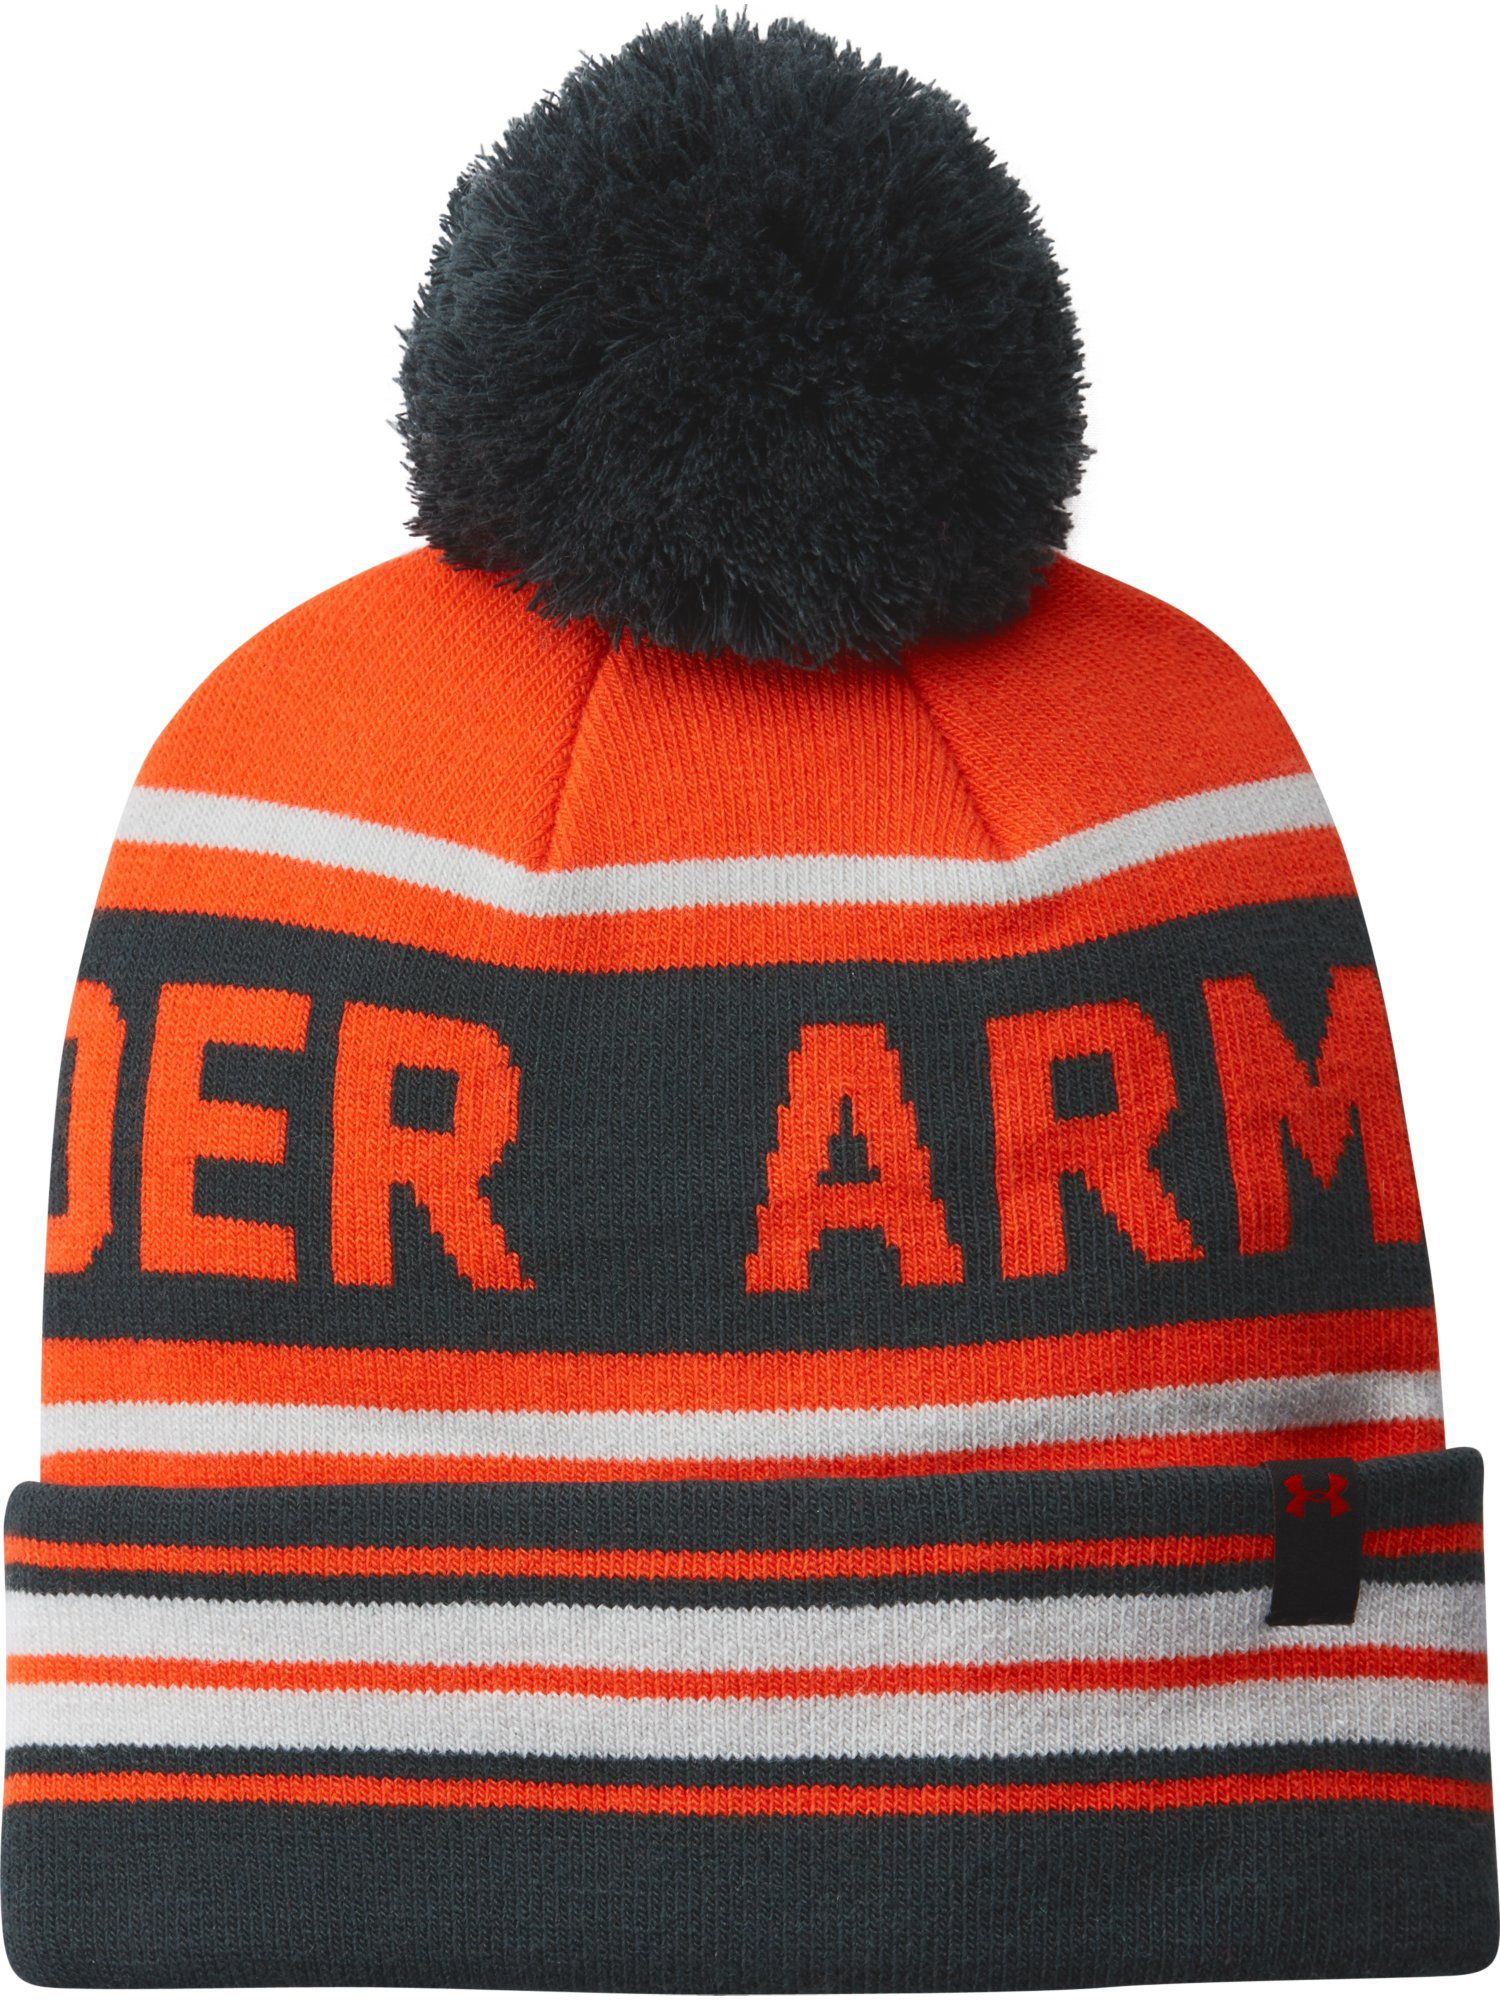 4f46fb6a4fec6 ... bucket hat 5cb1f 1da05  free shipping under armour retro pom beanie in  orange for men lyst 6db79 2af30